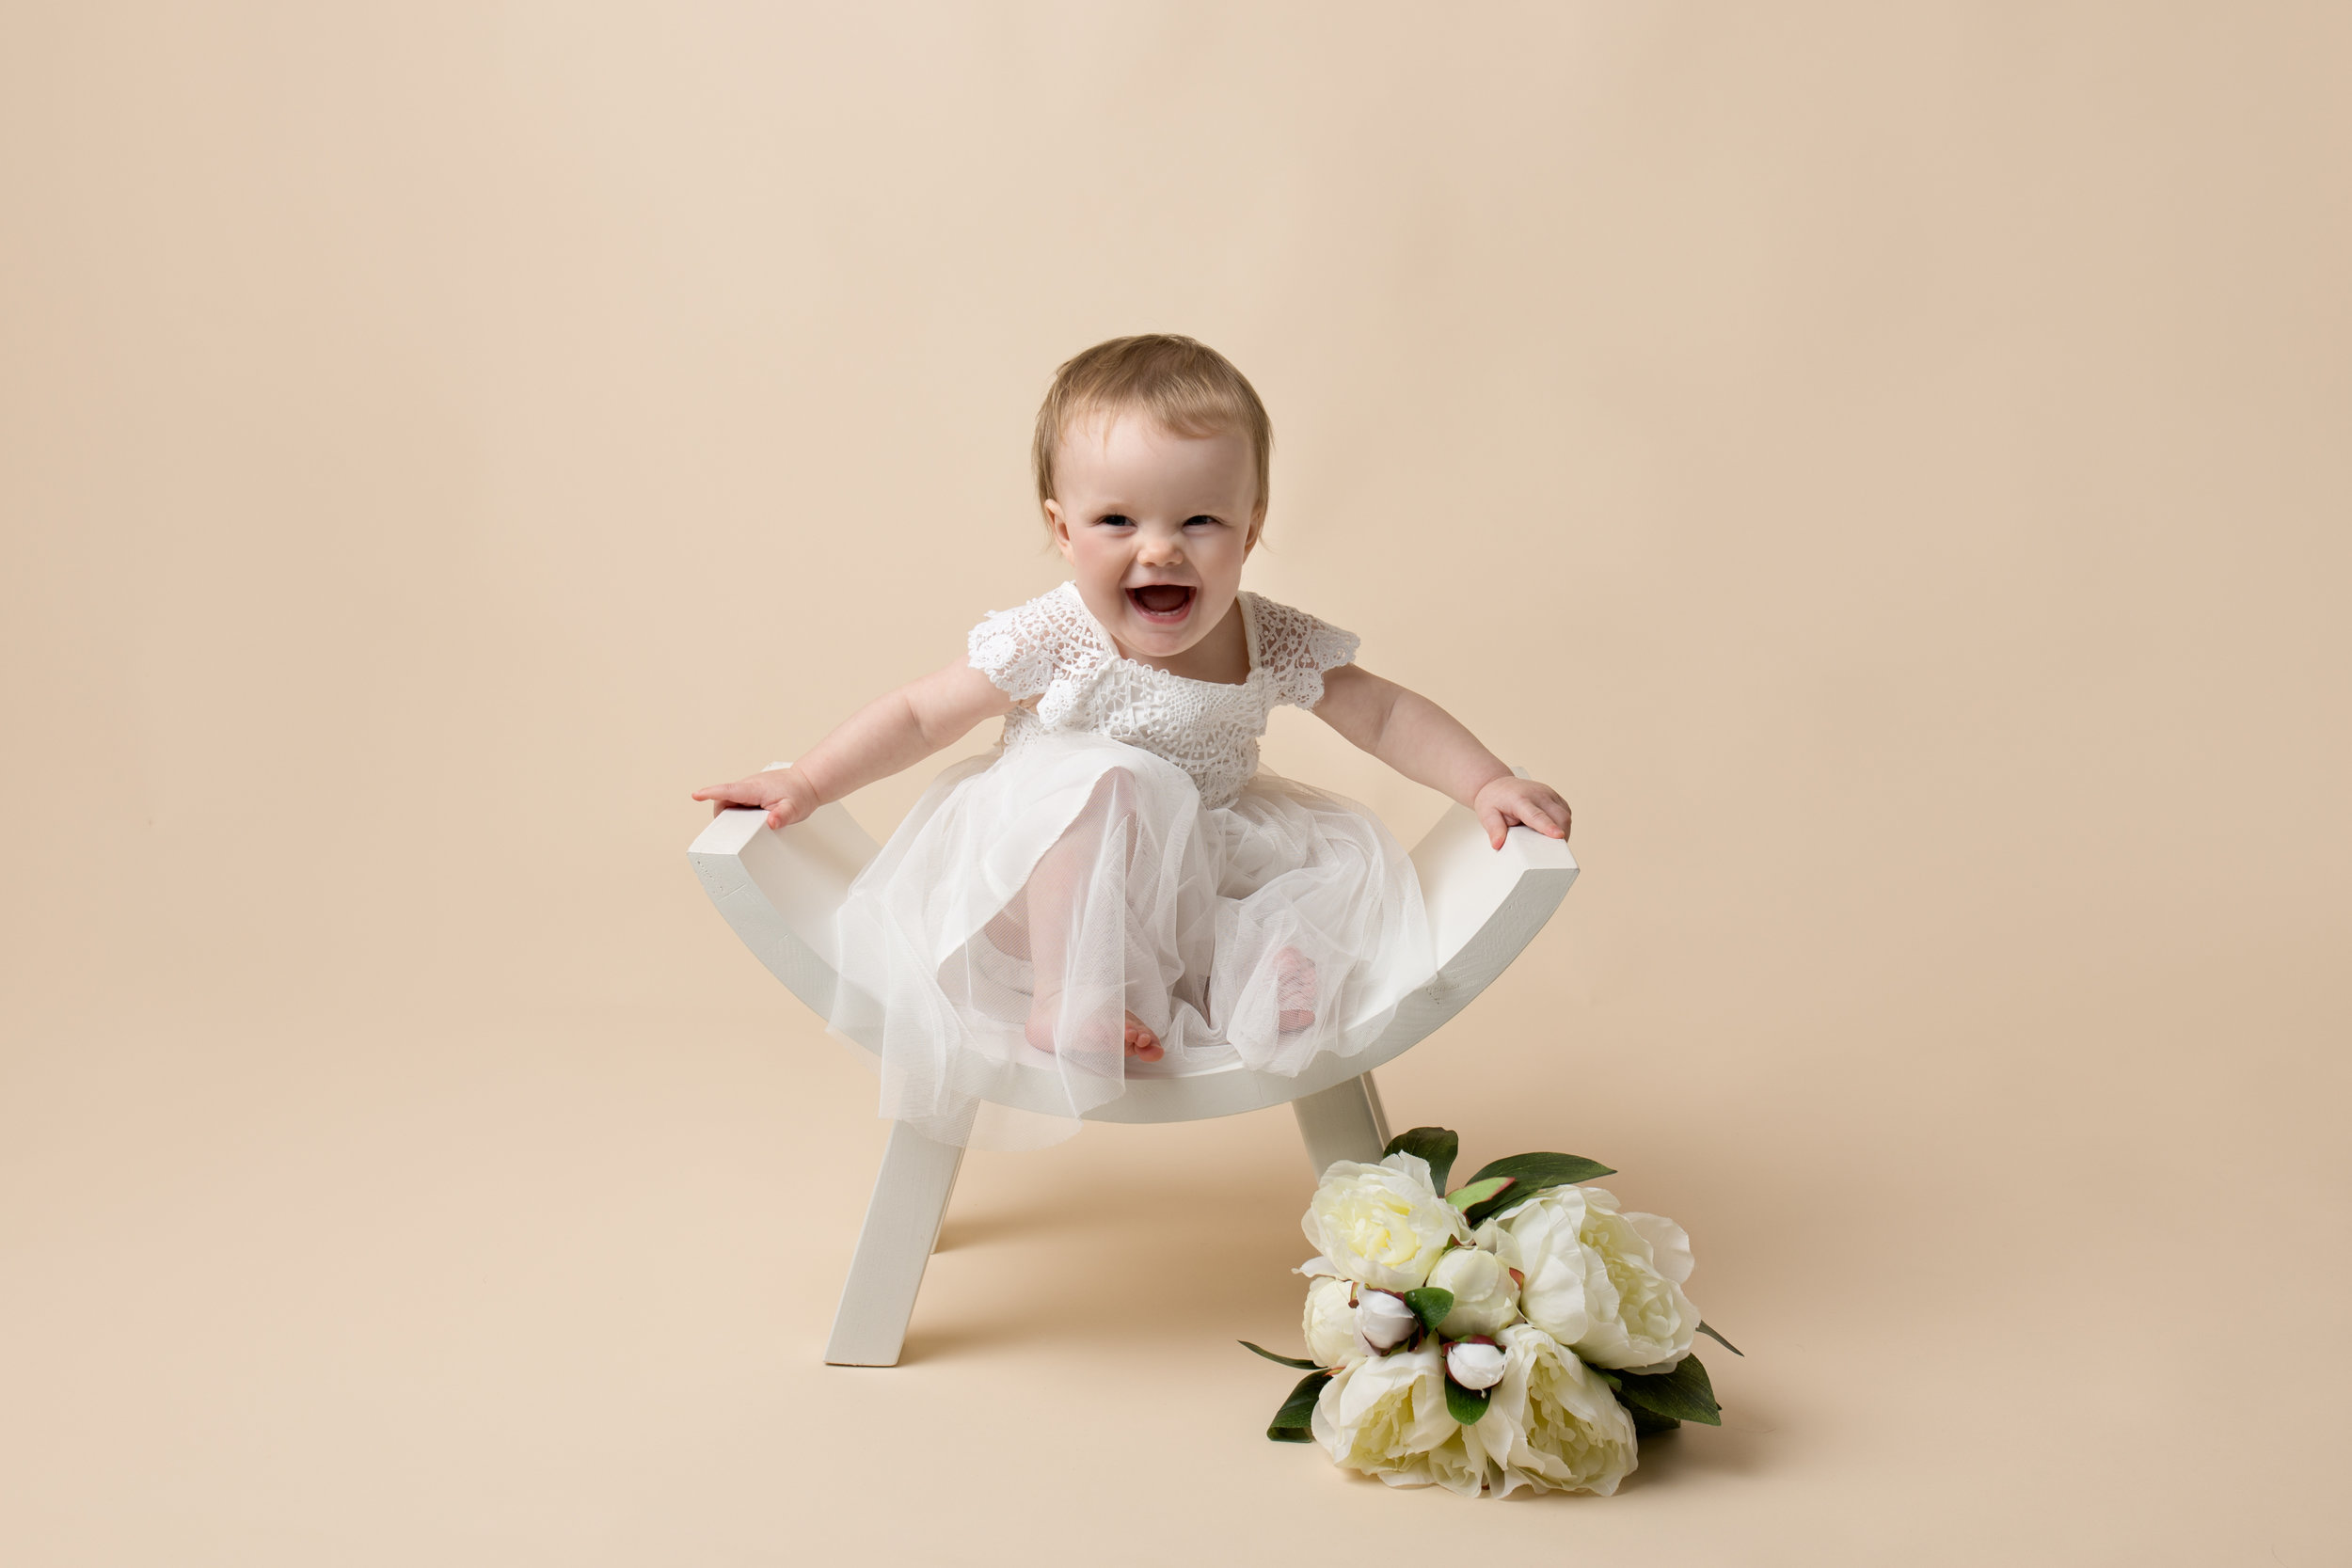 newborn-photography-children-baby-milton keynes-cake-smash-maternity-1-12.jpg